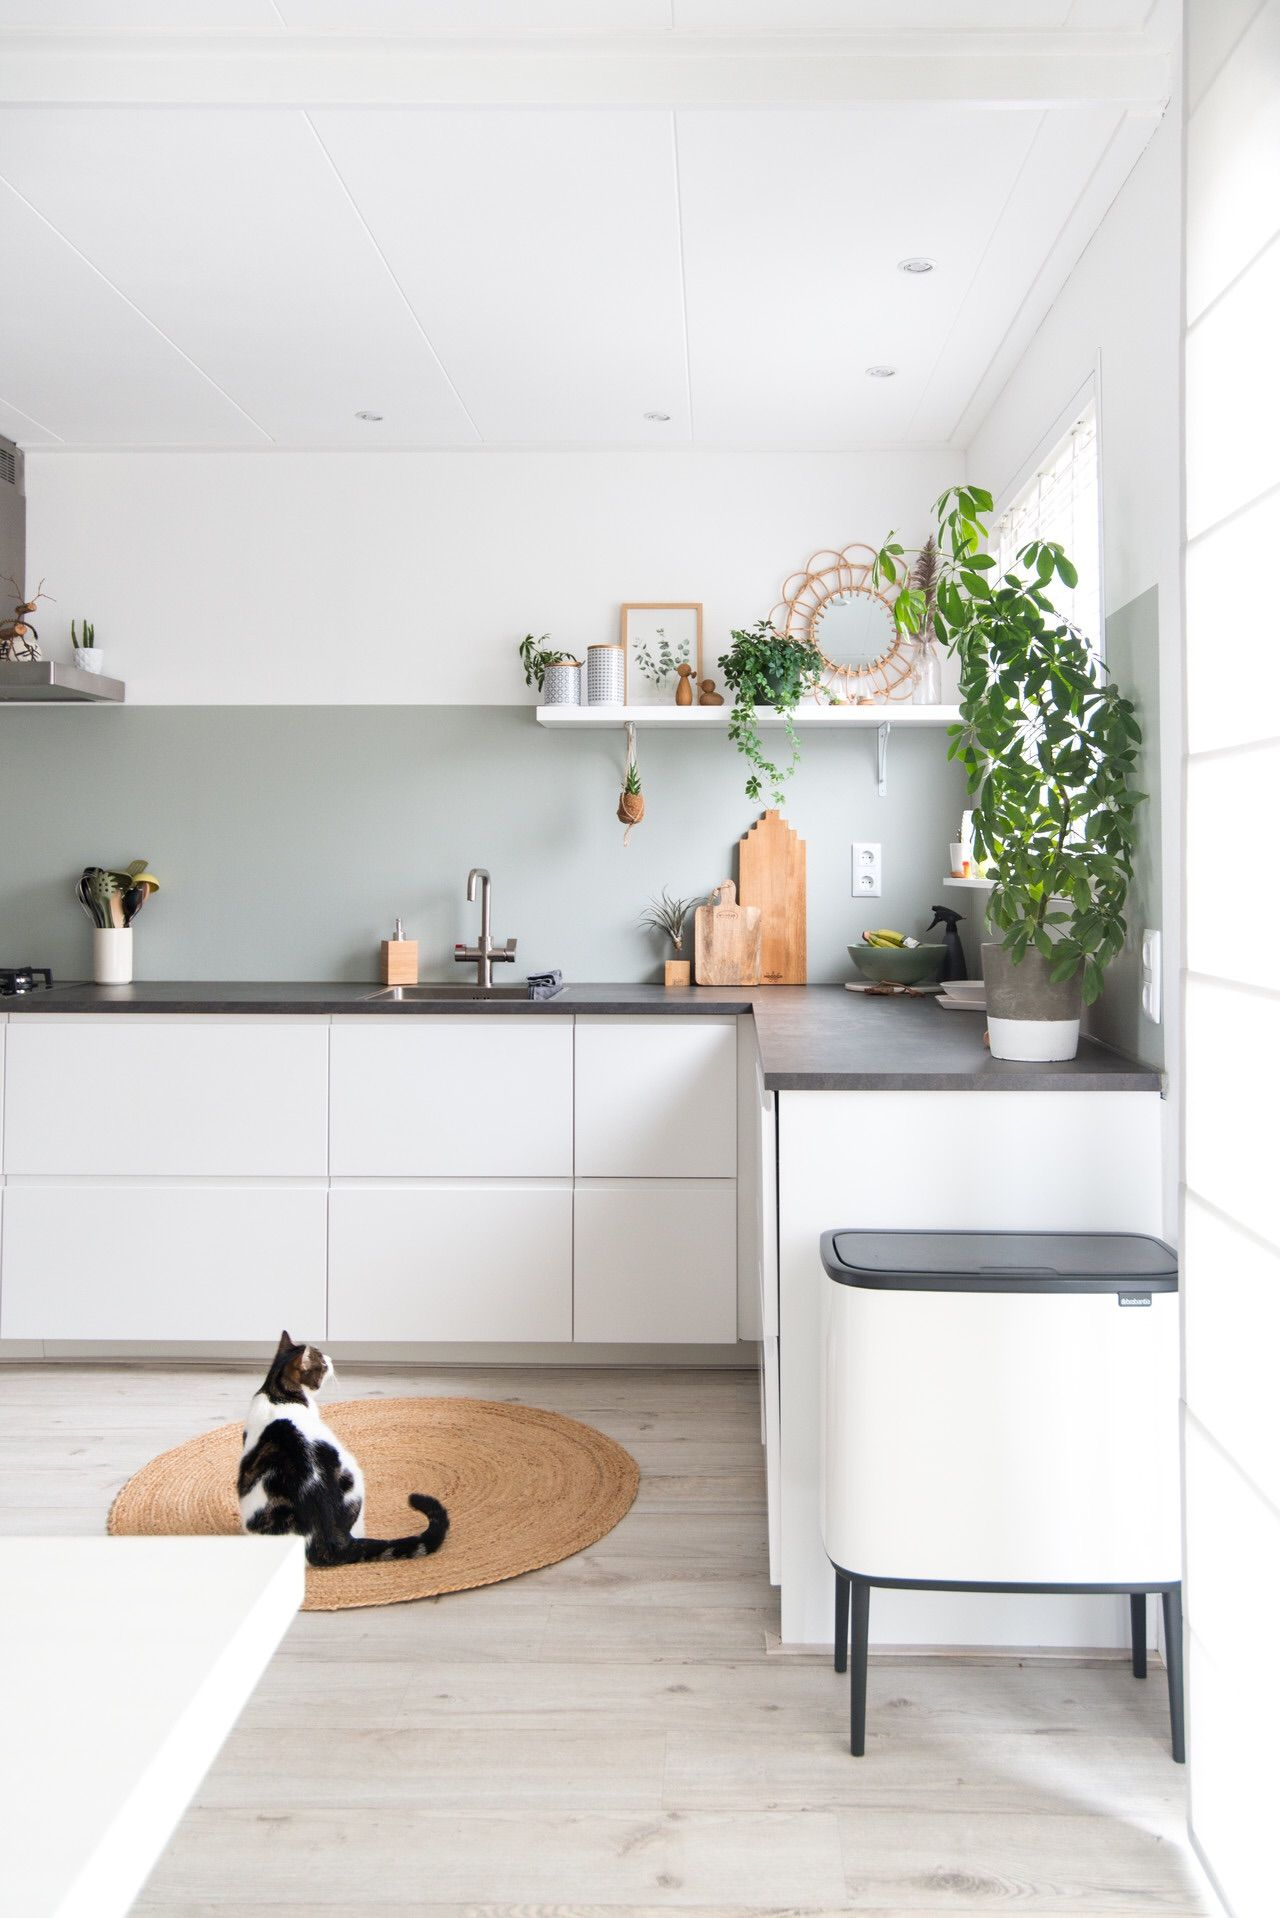 Brabantia Keuken Green And White Ikea Kitchen With Concrete Top By Keeelly91 Www